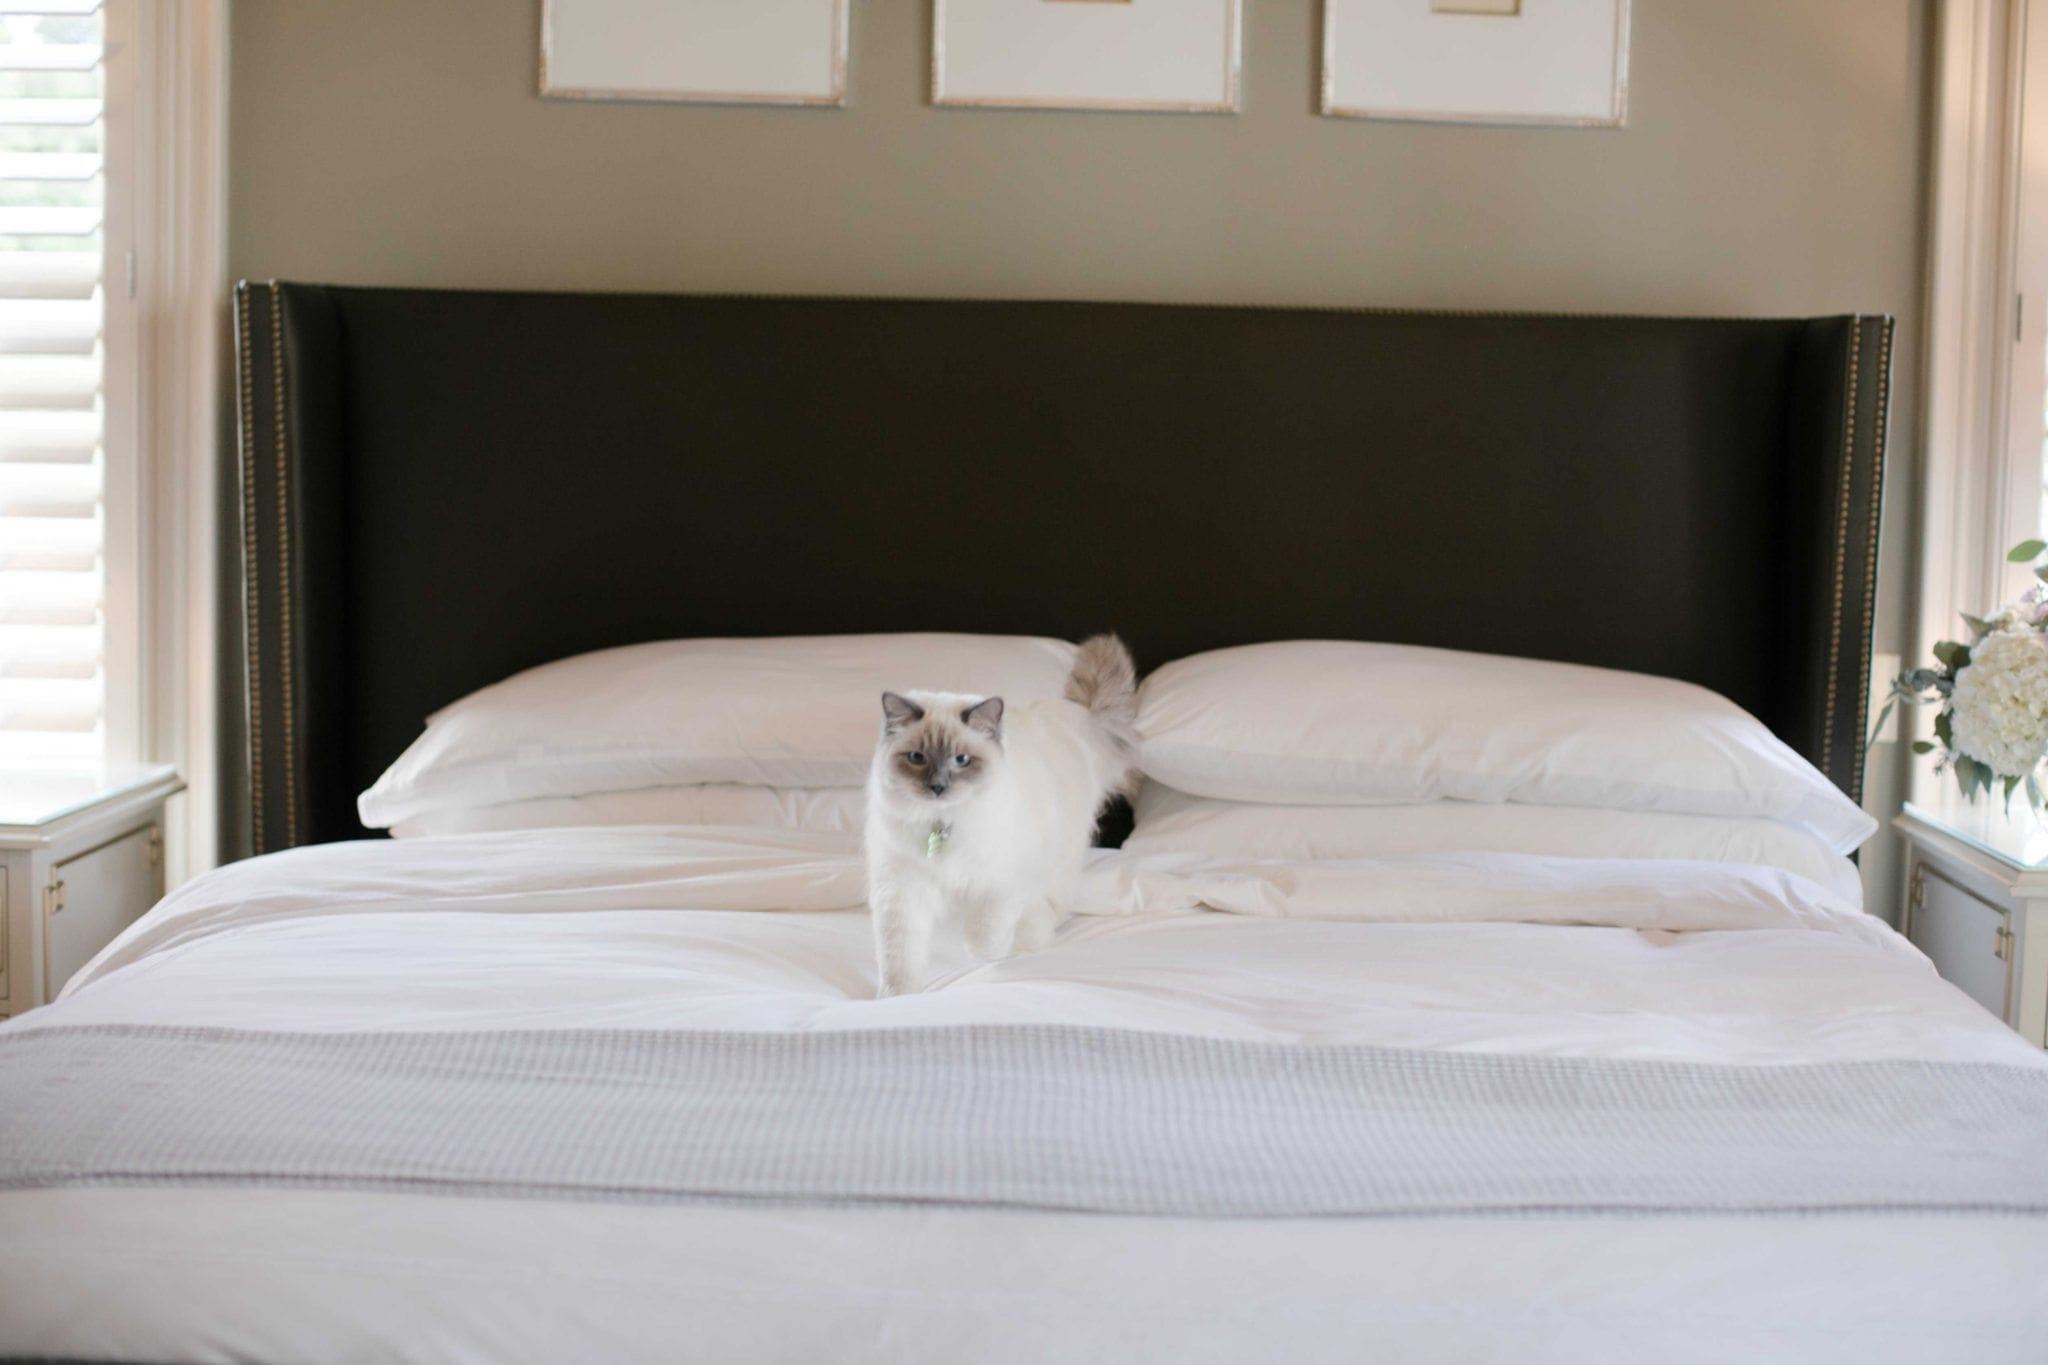 kitten walking on luxury hotels sheets with white bedding and gray throw blanket